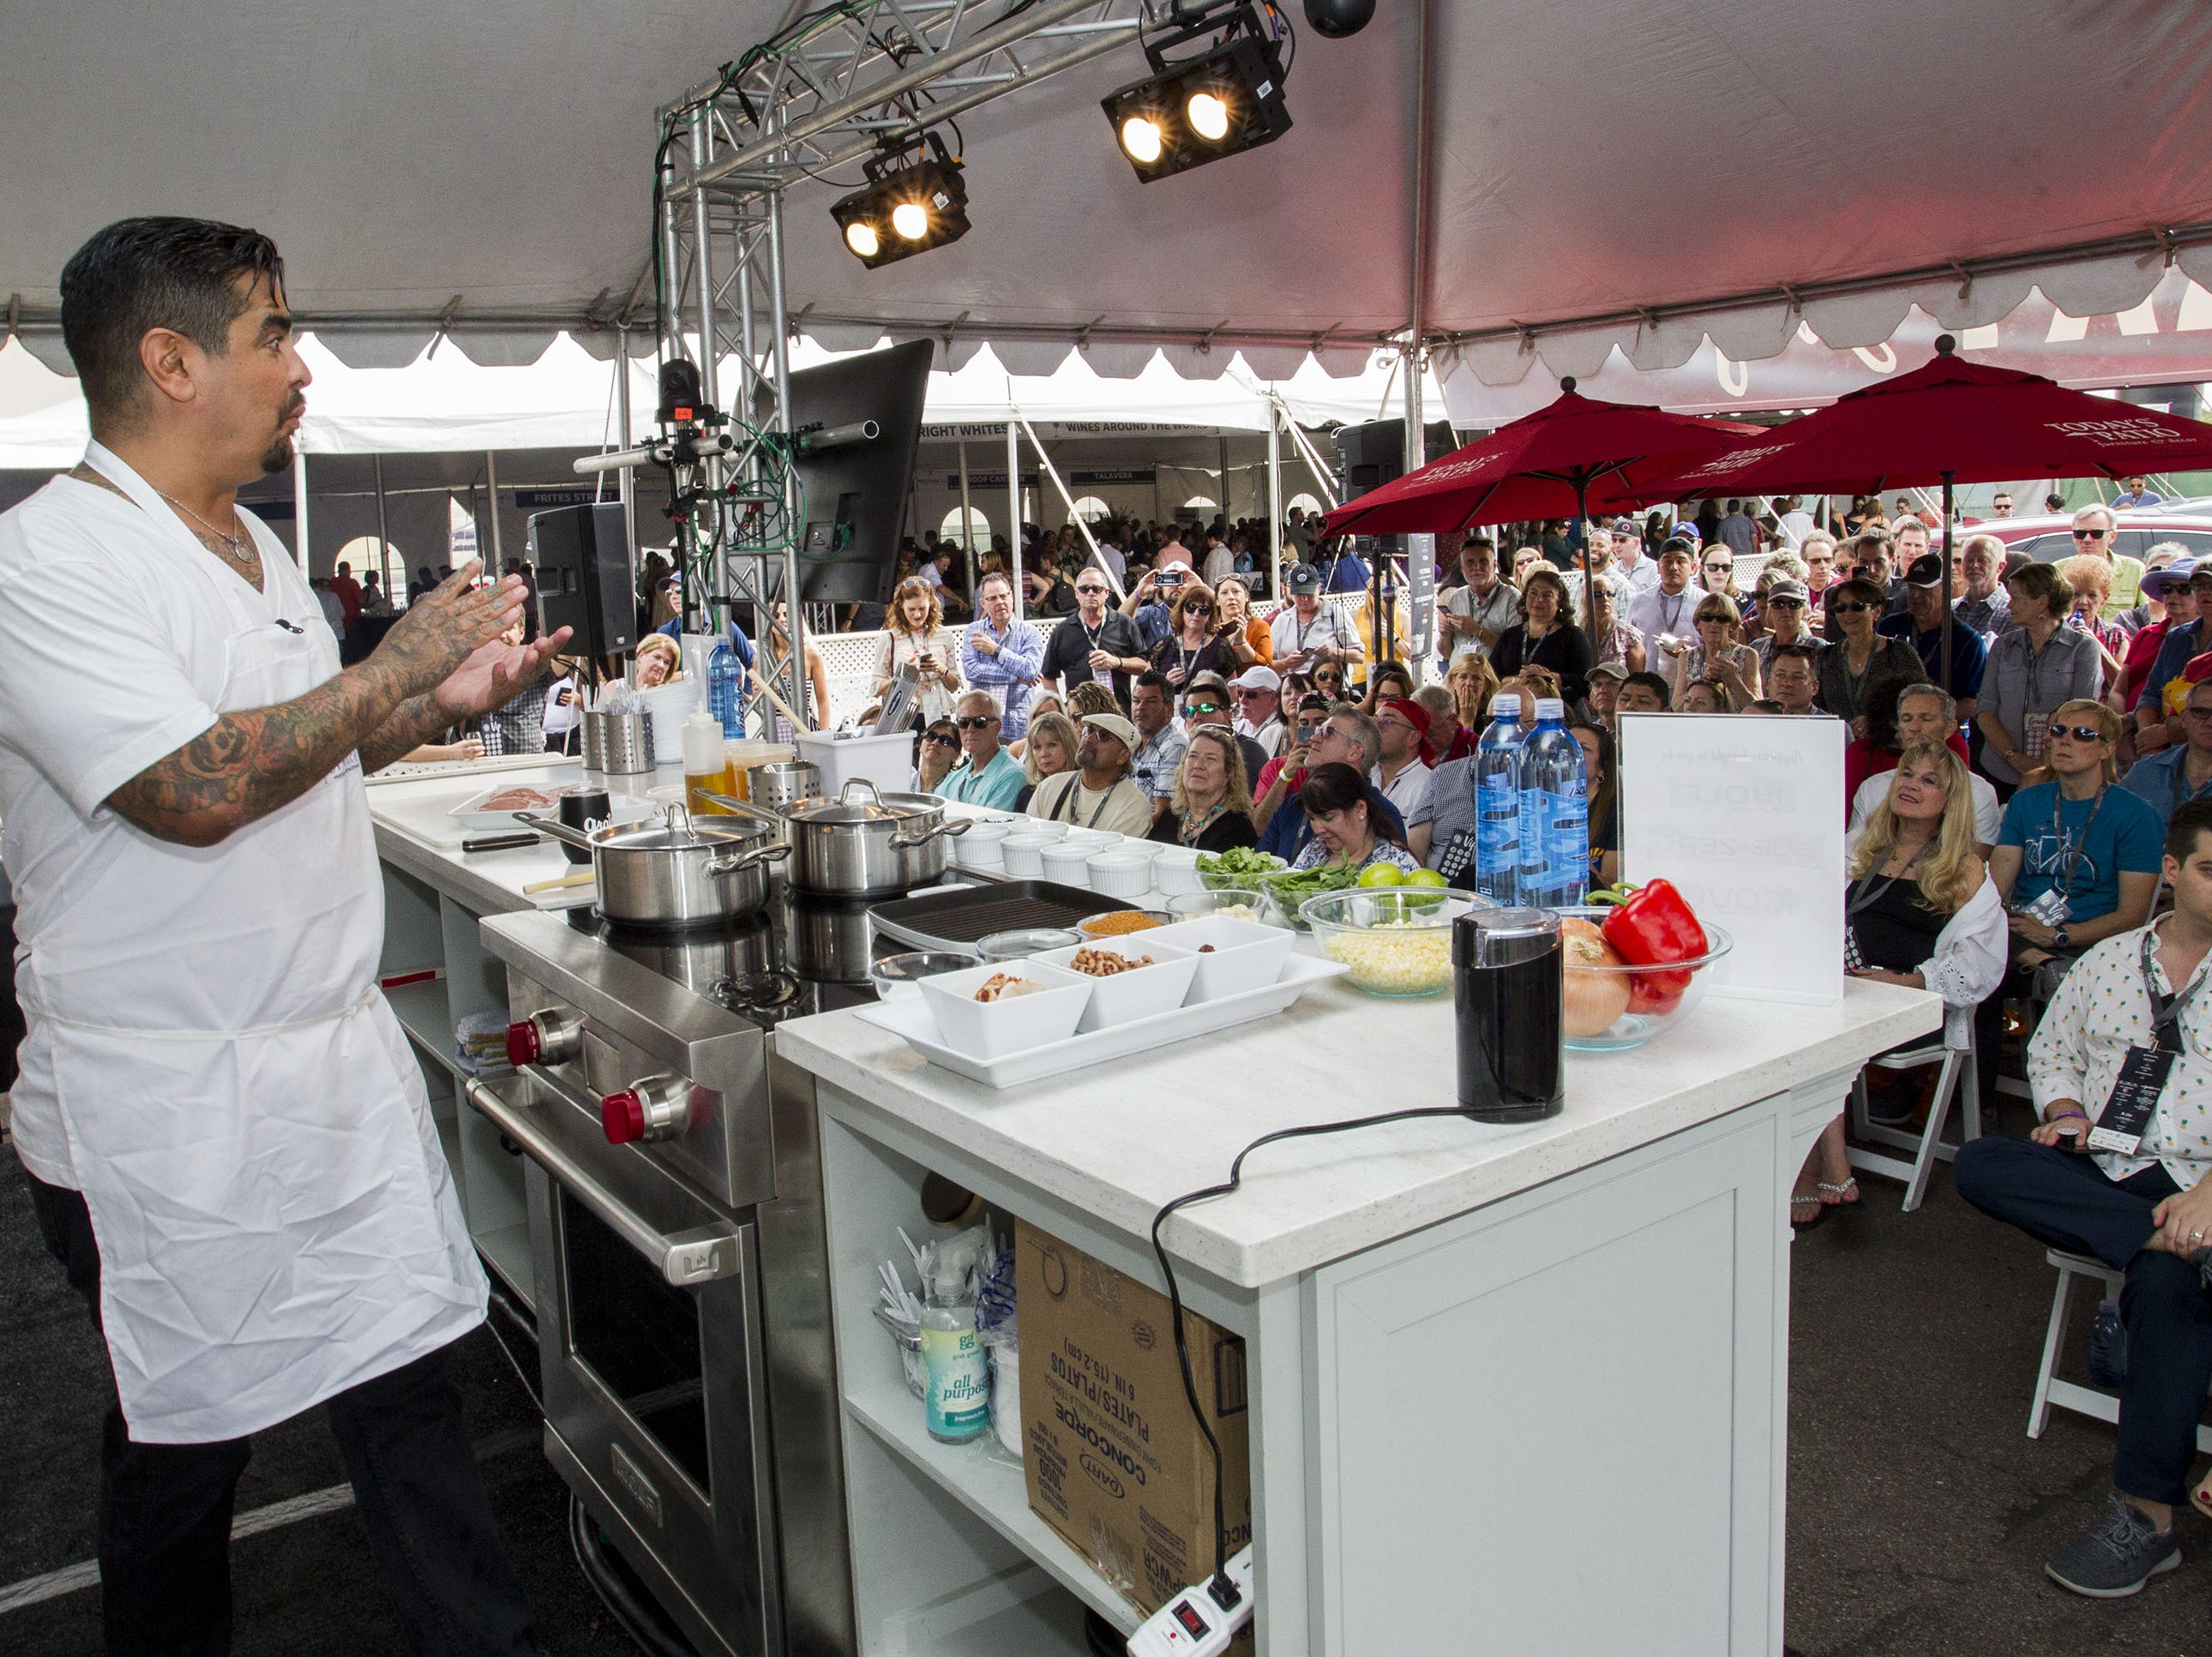 Chef Aarón Sánchez entertains the crowd gathered at the Culinary Stage during the azcentral Wine & Food Experience at WestWorld of Scottsdale, Sunday, Nov. 4, 2018.